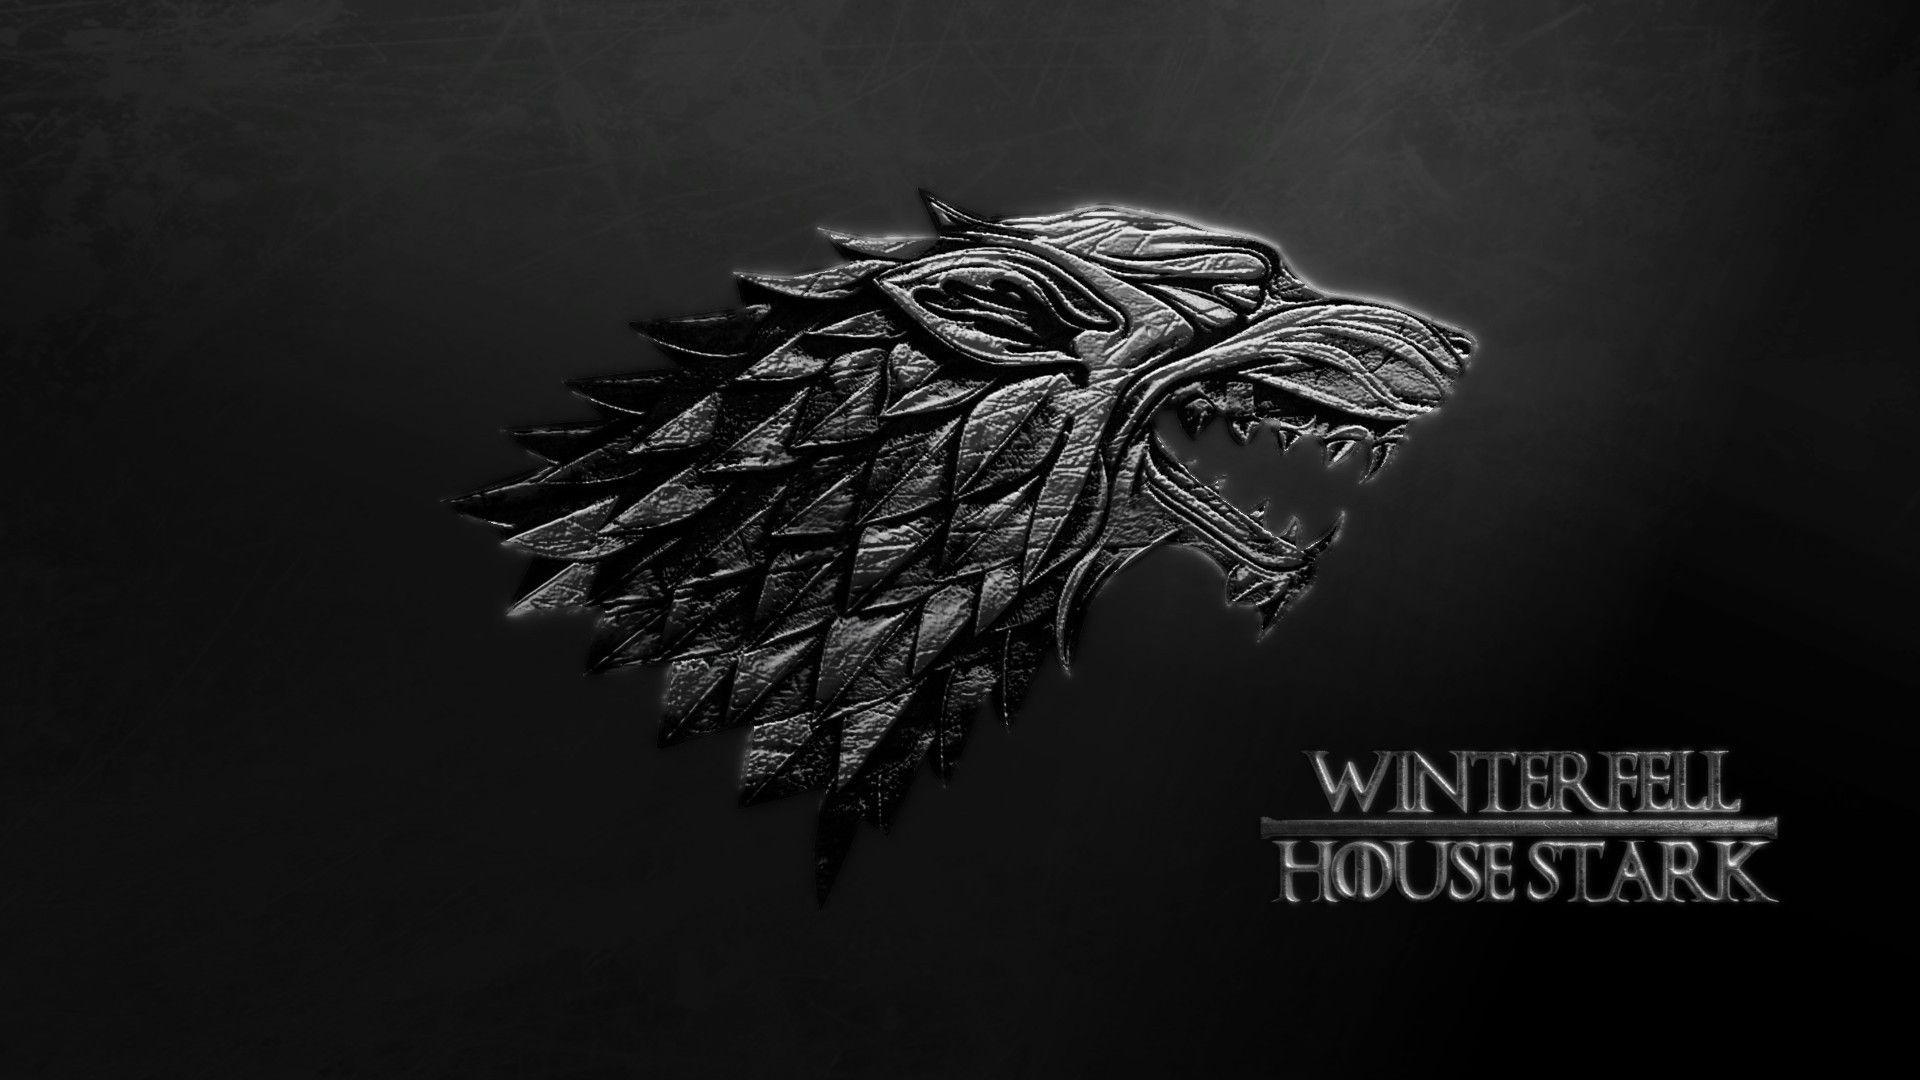 House Stark Game Of Thrones Wallpaper Hd Best Movie Poster Wallpaper Hd Best Movie Posters Movie Posters Winter Is Coming Wallpaper